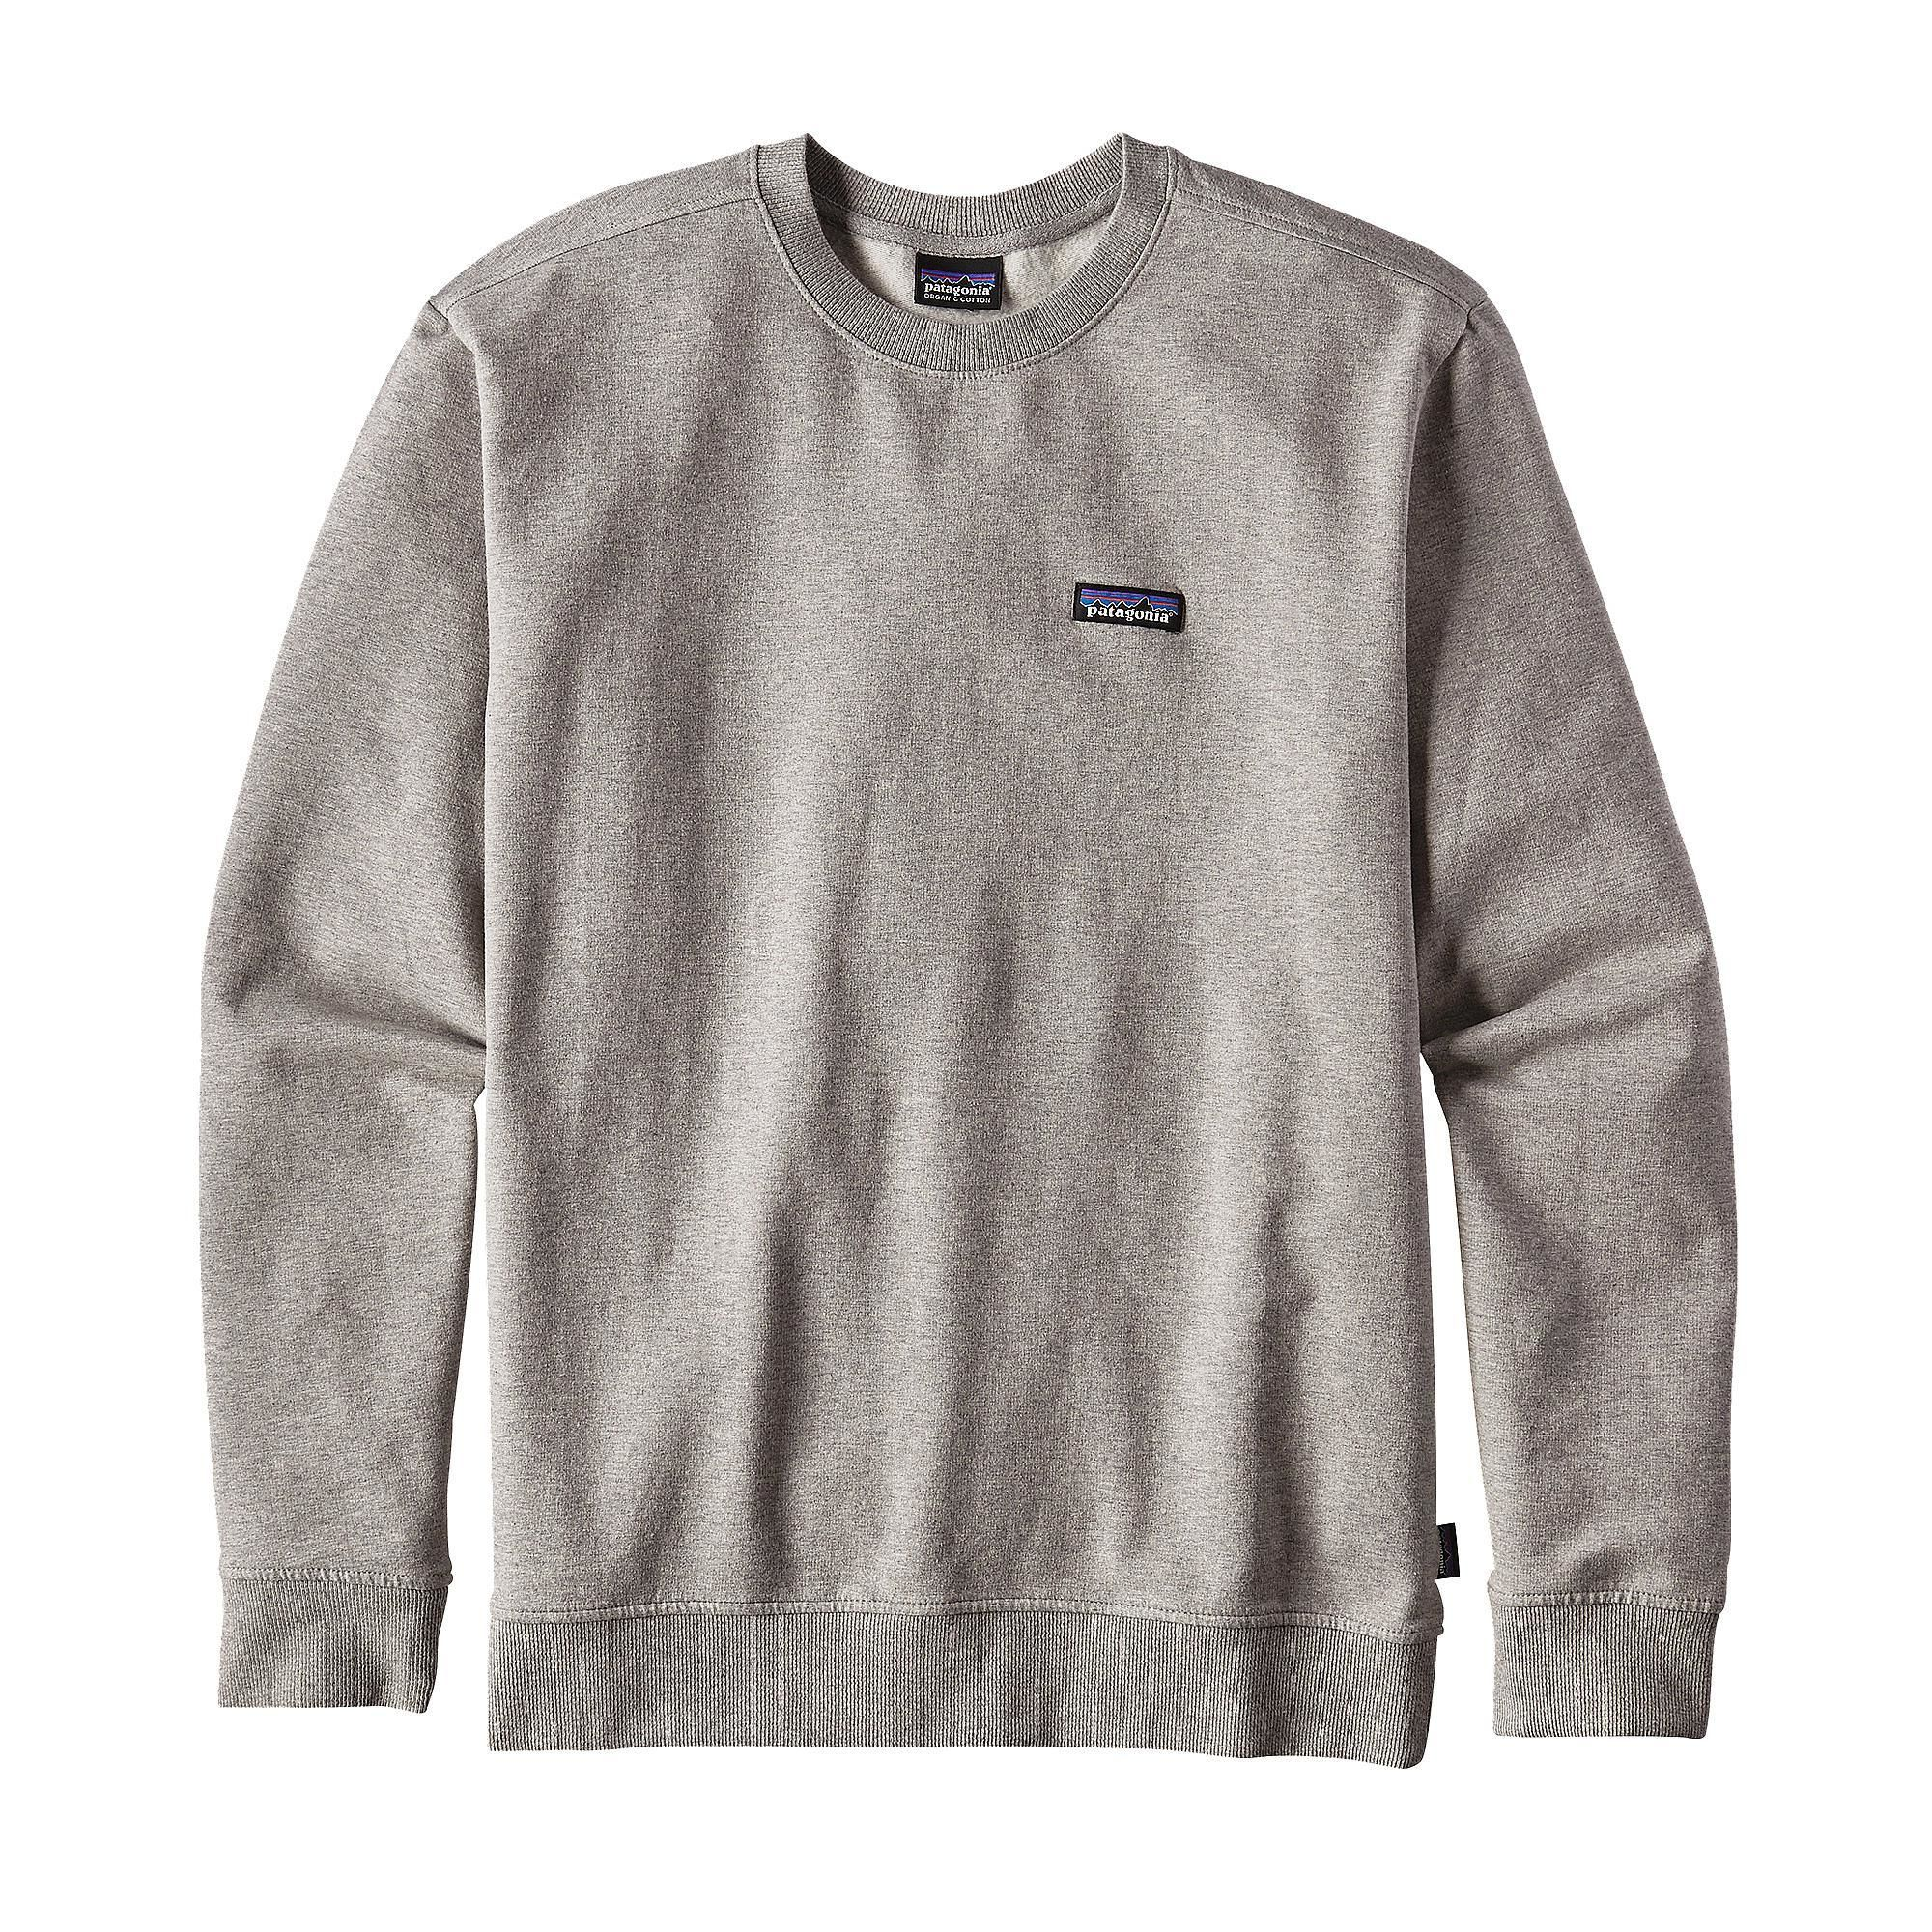 【39486】M's P-6 Label MW Crew Sweatshirt(通常価格:8640円)